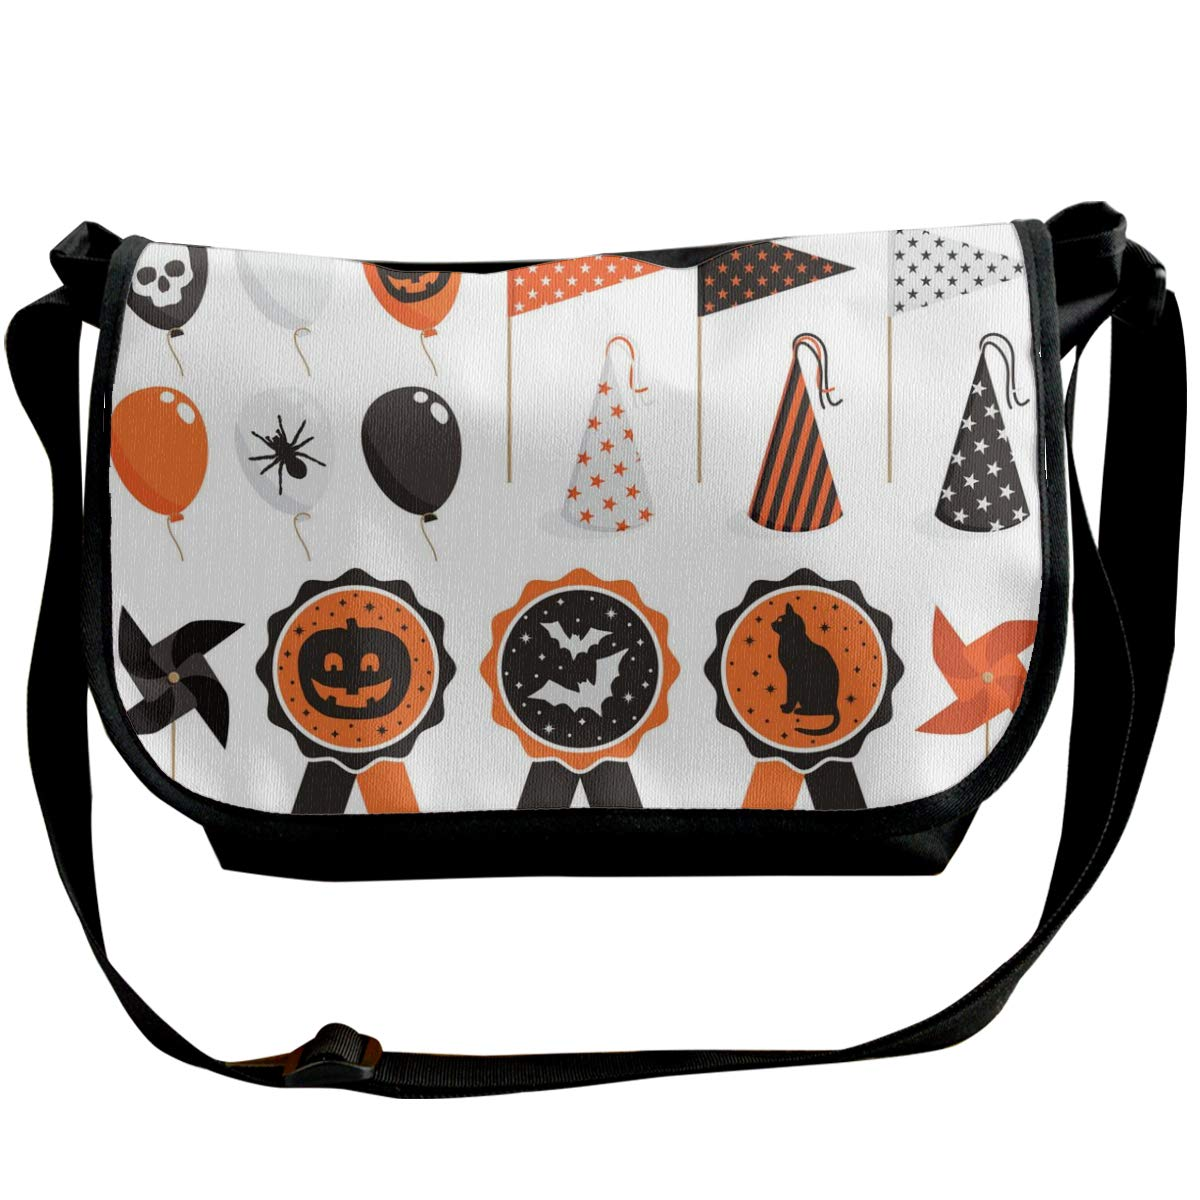 Taslilye Halloween Party Pack Vector Image Personalized Wide Crossbody Shoulder Bag For Men And Women For Daily Work Or Travel